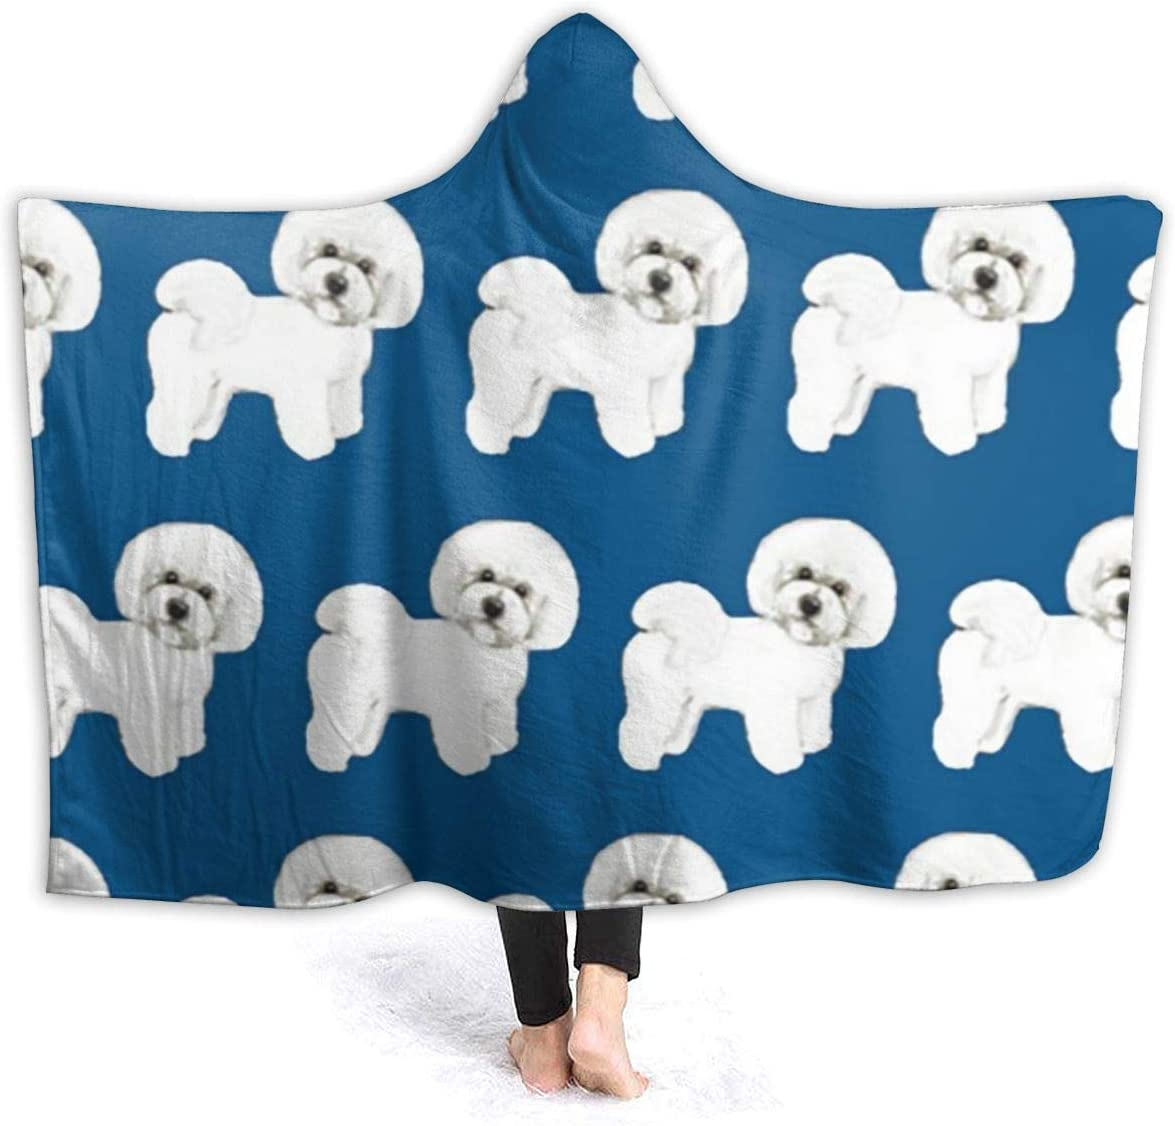 OUCUCK Mantas para Cama, Blue Bichon Frise Micro Fleece Blanket Throw Twin Travel Size Extra Hoodie Cloak-Fall Winter All Season for Indoor Outdoor Gifts Size 50x40 in, 60x50 in, 80x60 in